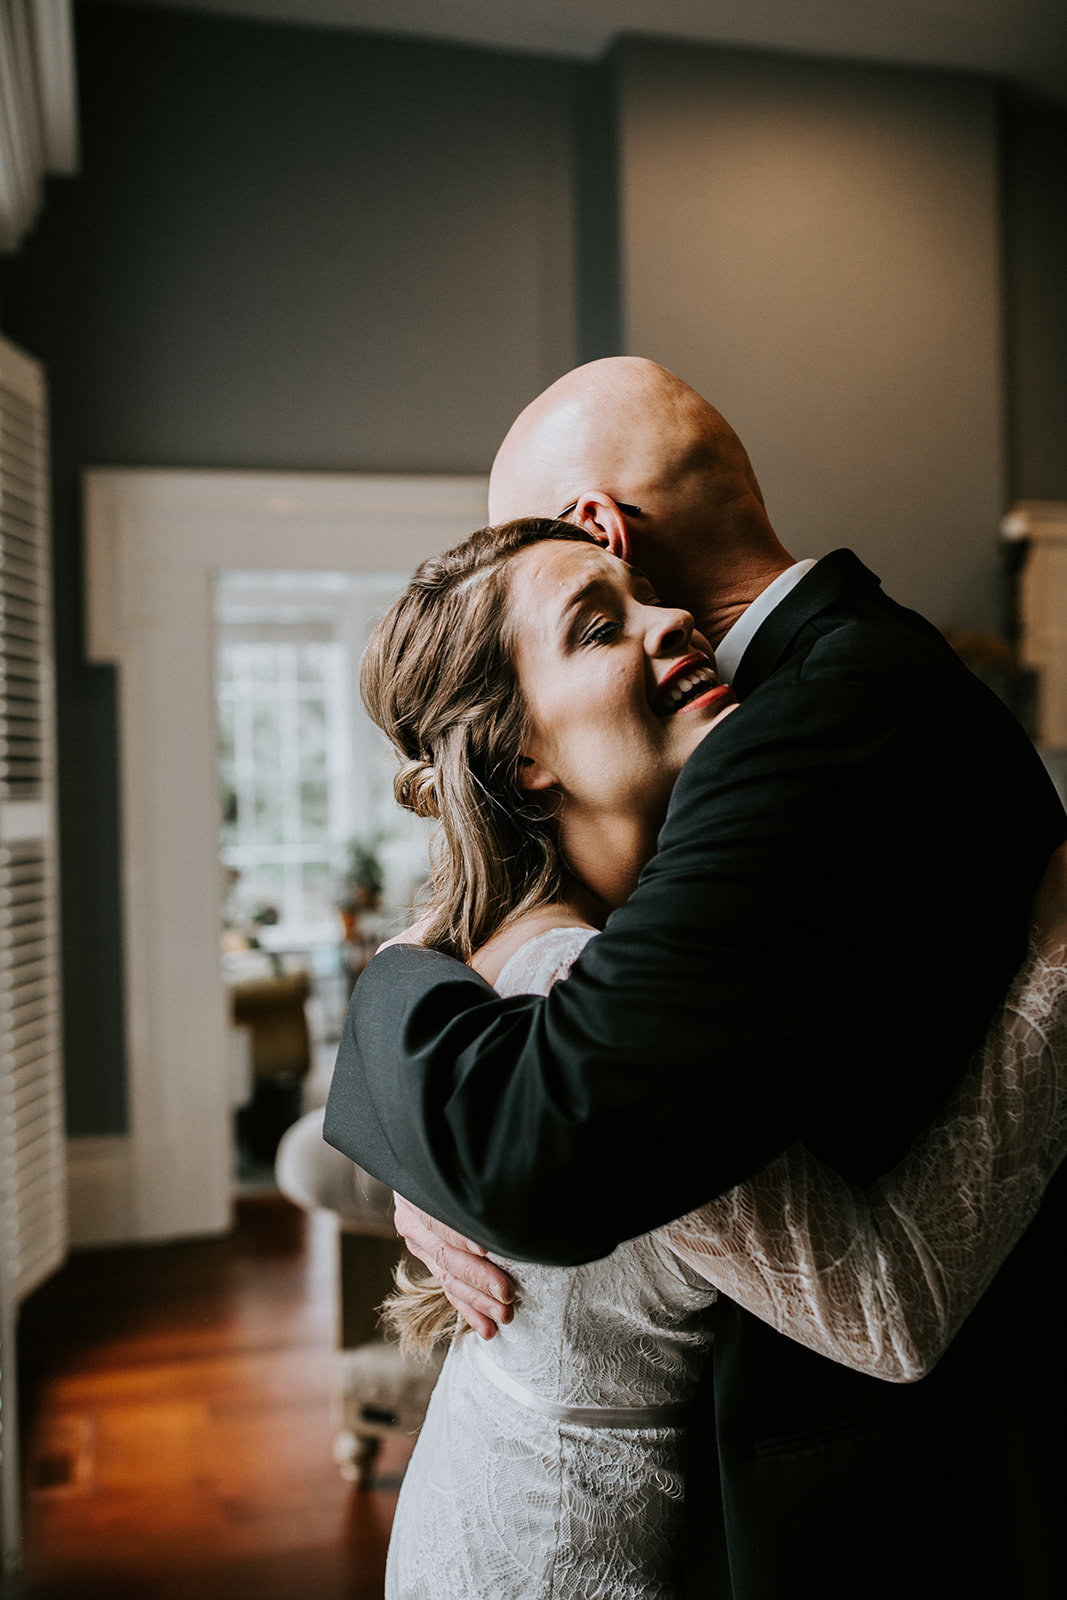 A bride hugs a bald man.